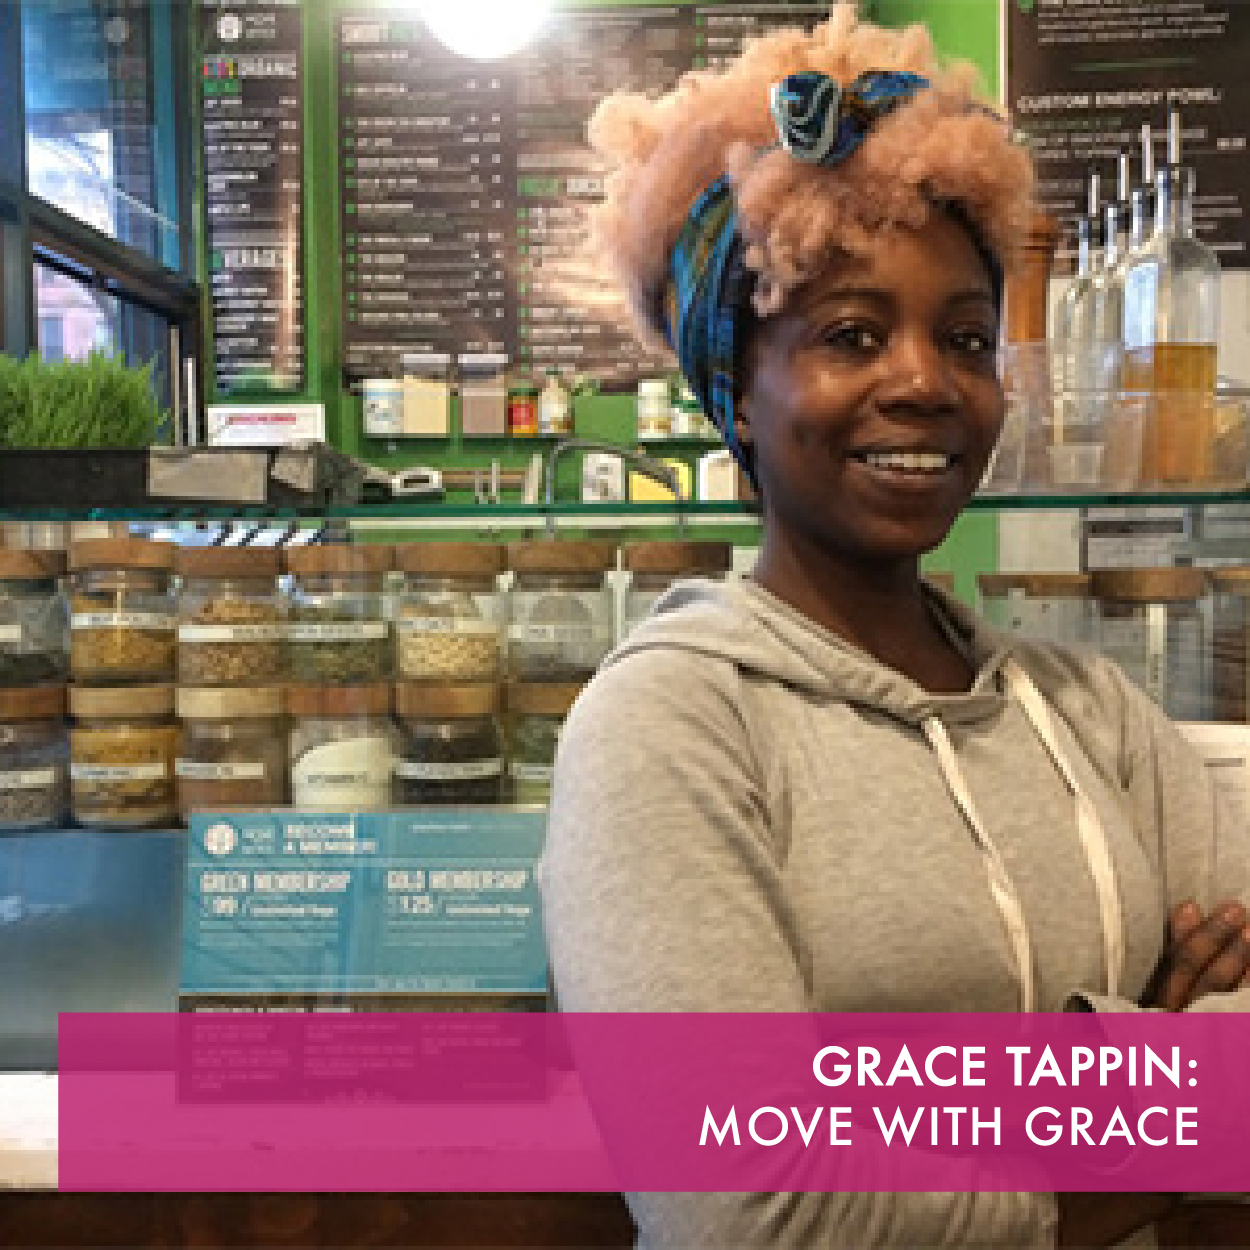 Move with Grace Moon Studio offers daily classes, such as yoga, Pilates, and fitness. The Studio's Juice Bar provides healthy drinks and food.